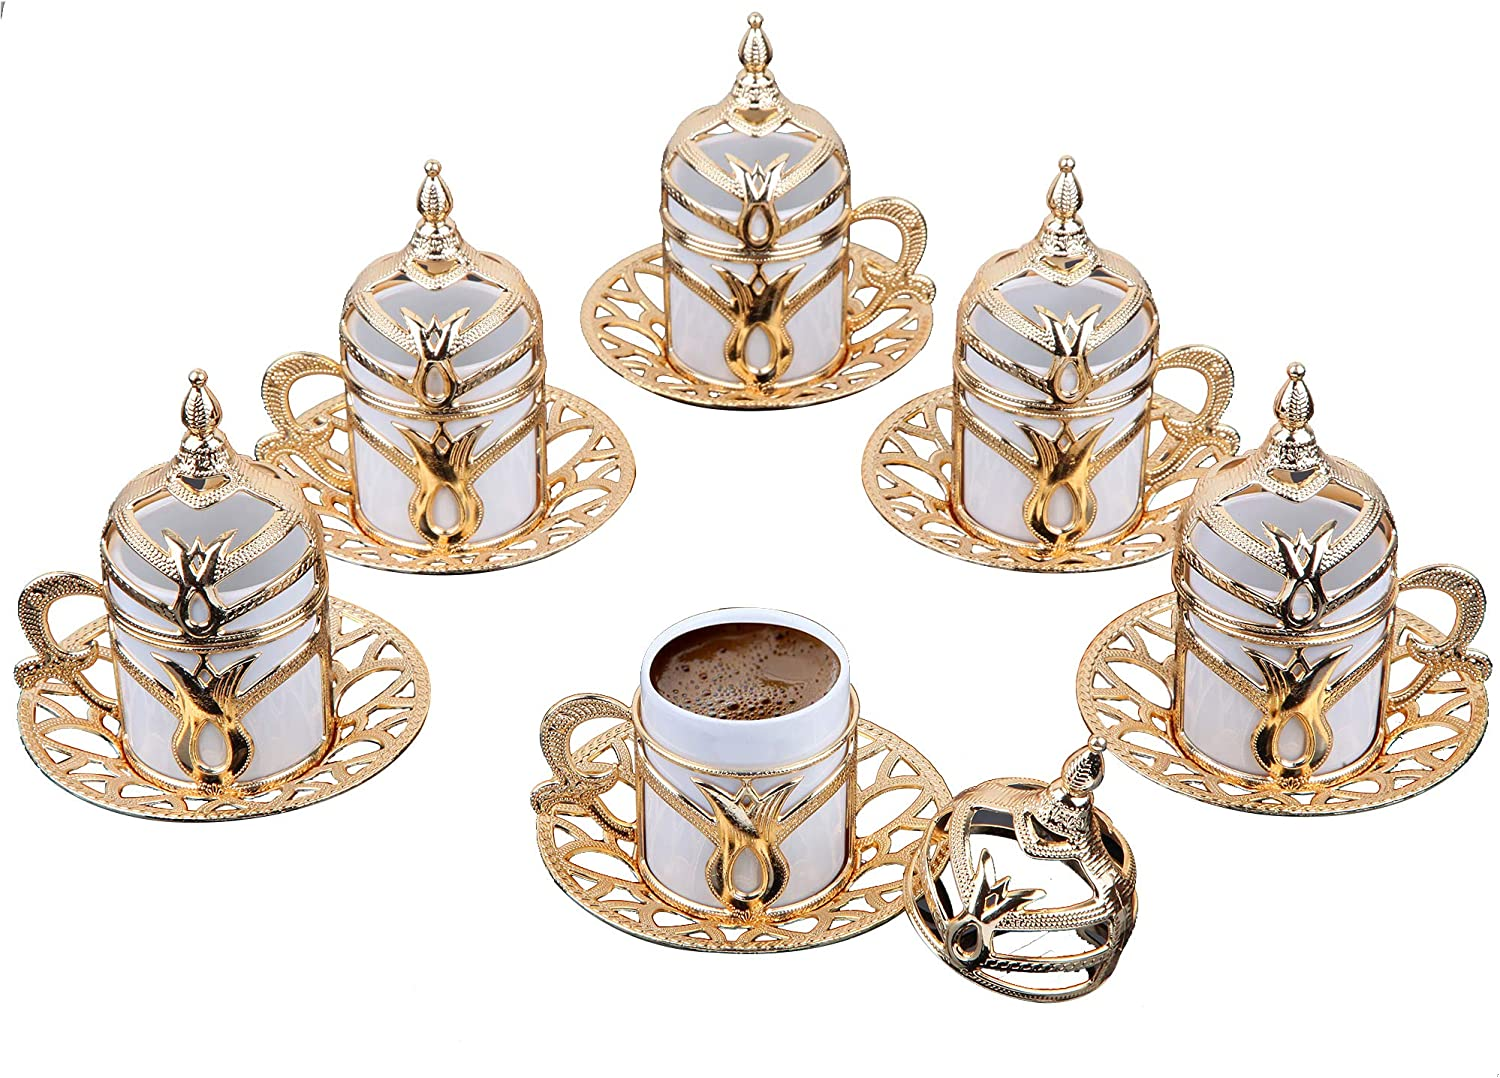 Premium Porcelain Turkish Coffee Cups Set of 6 and Saucers - 3.5 oz. - Gold Espresso Serving Cup Set